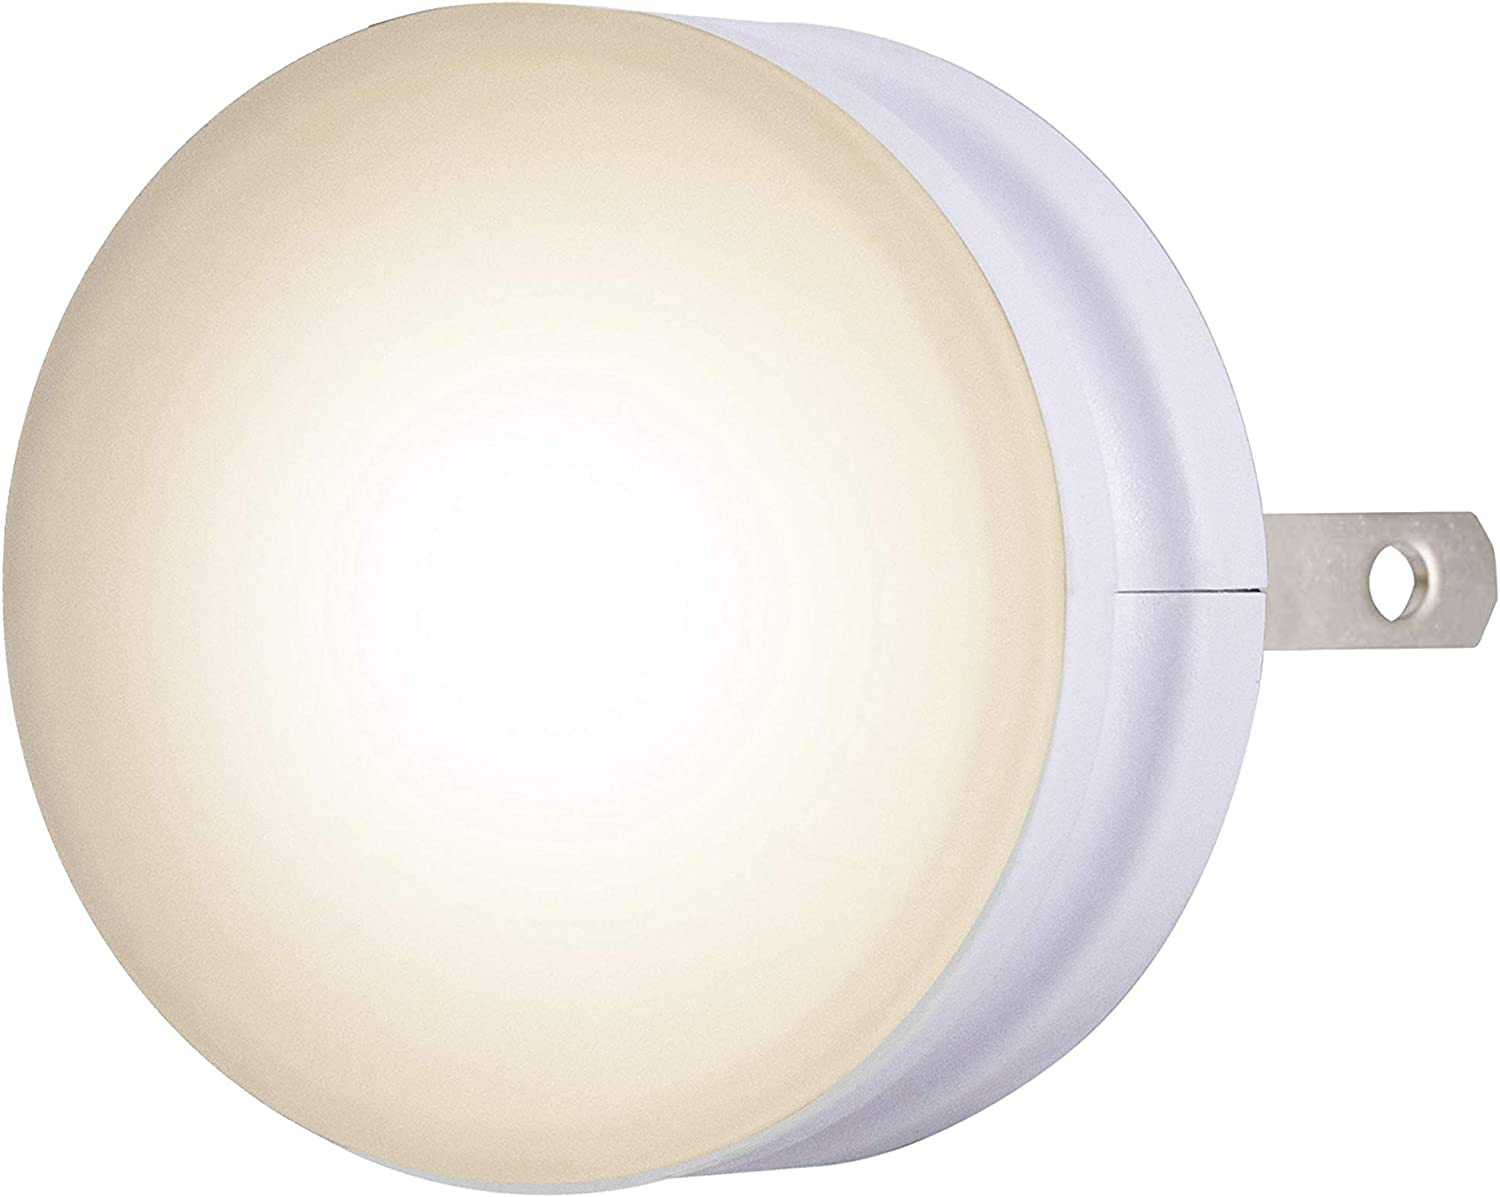 Lights by Night LED GLO Dot Night Light Dusk-to-Dawn Sensor, Plug-in, Home Décor, Compact, for Elderly, Ideal for Kitchen, Bathroom, Bedroom, Nursery, Hallway, 42885, 1 Pack, White